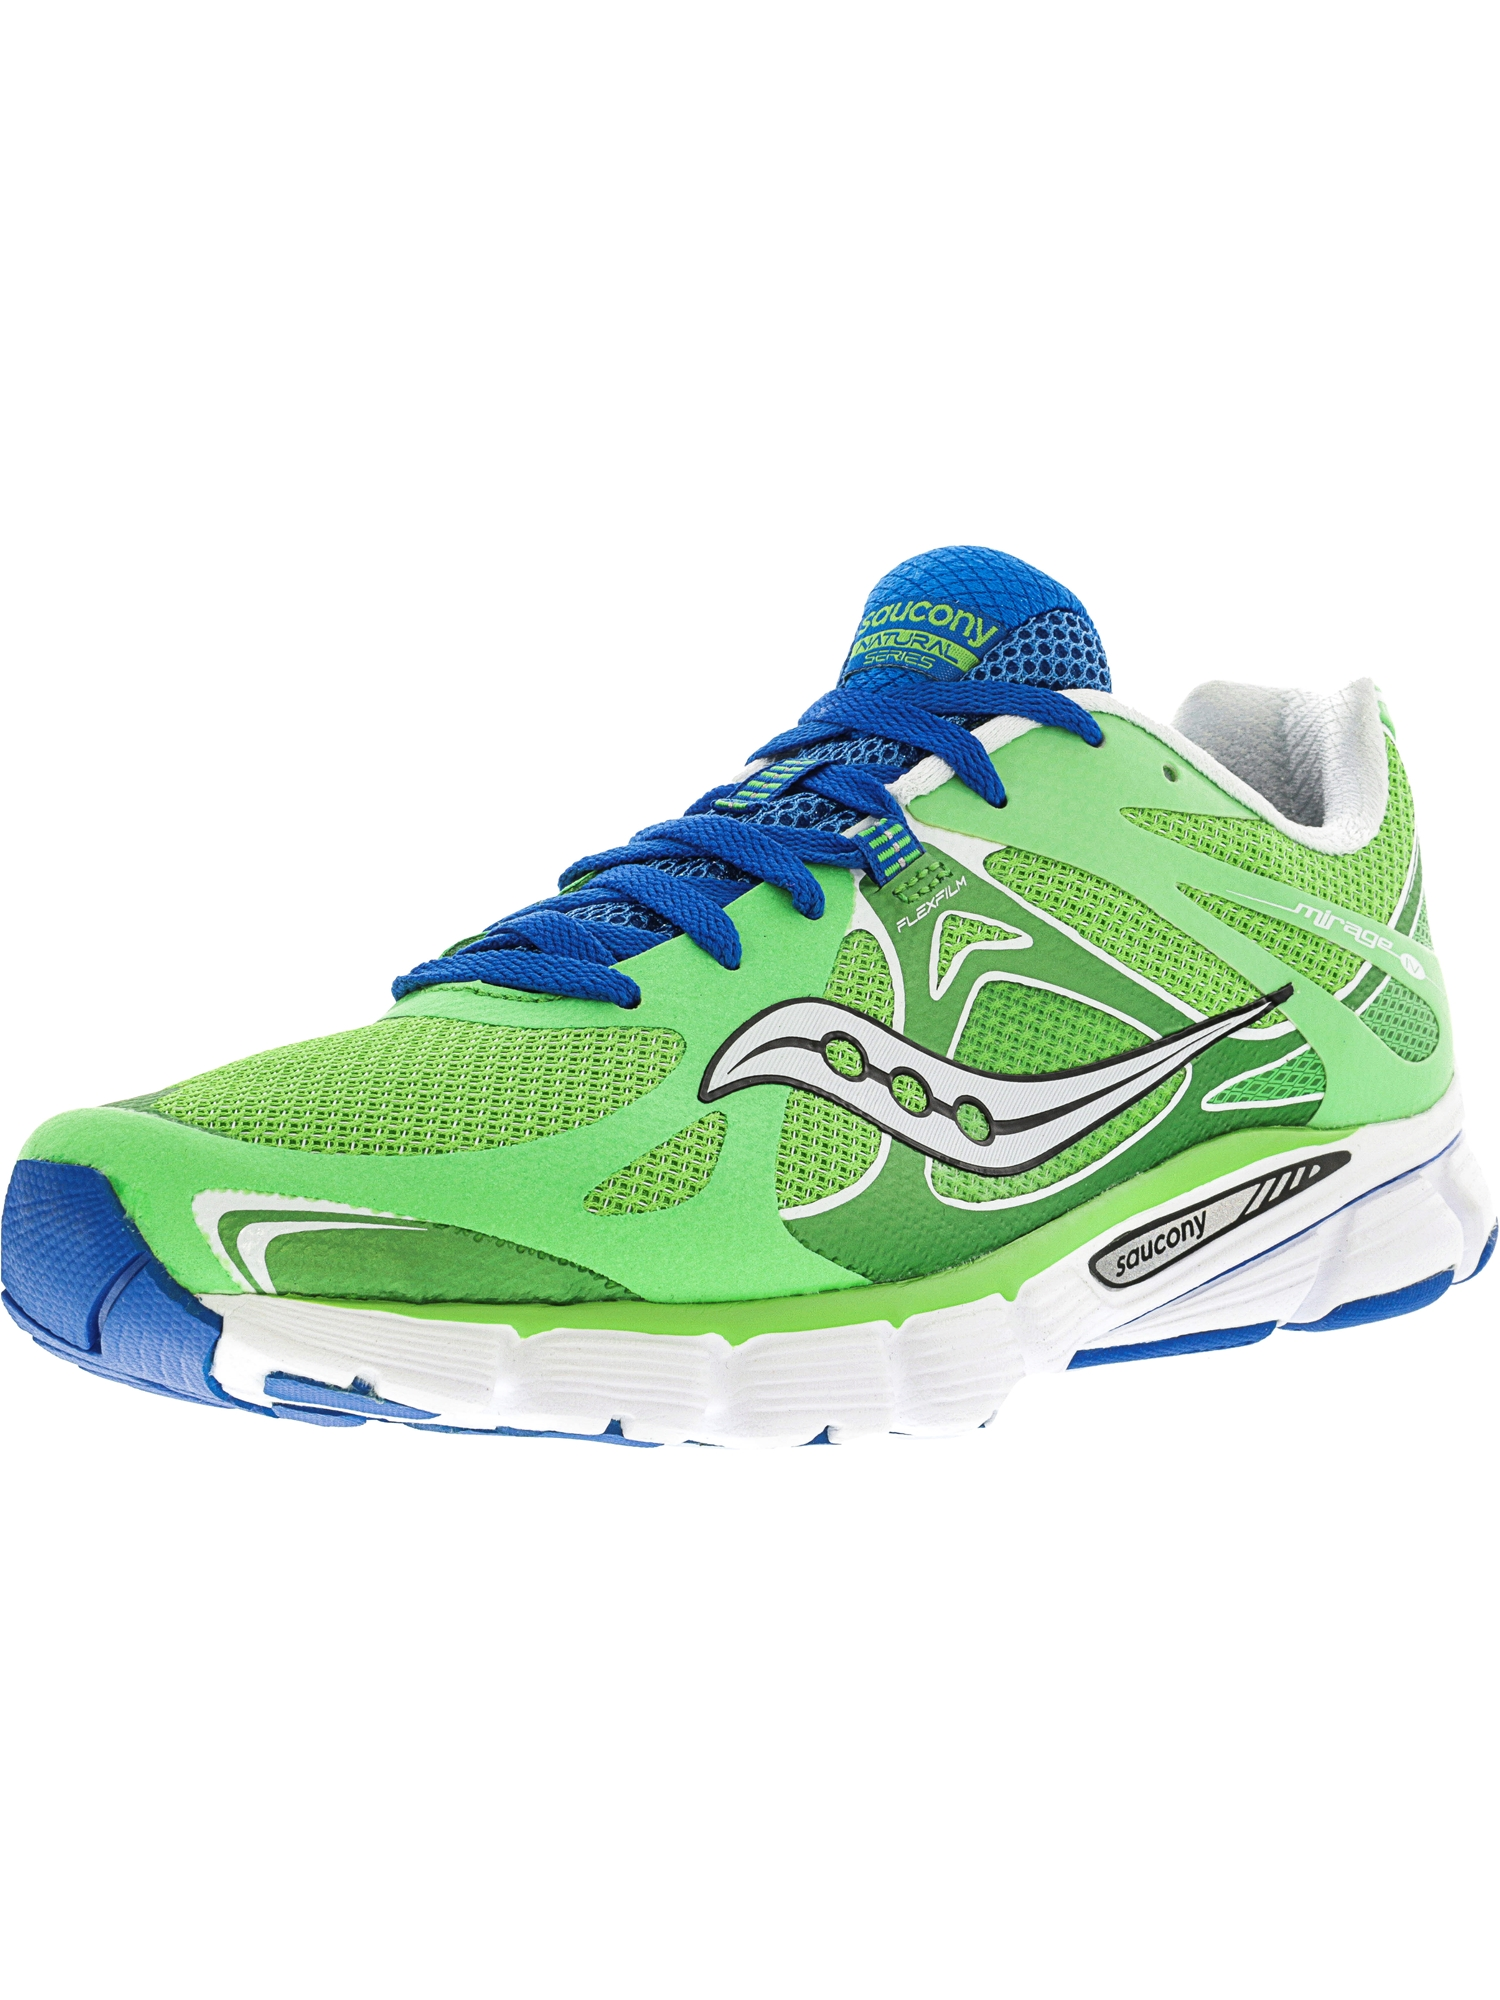 Saucony Women's Mirage 4 Green / Blue Ankle-High Running Shoe - 7.5M